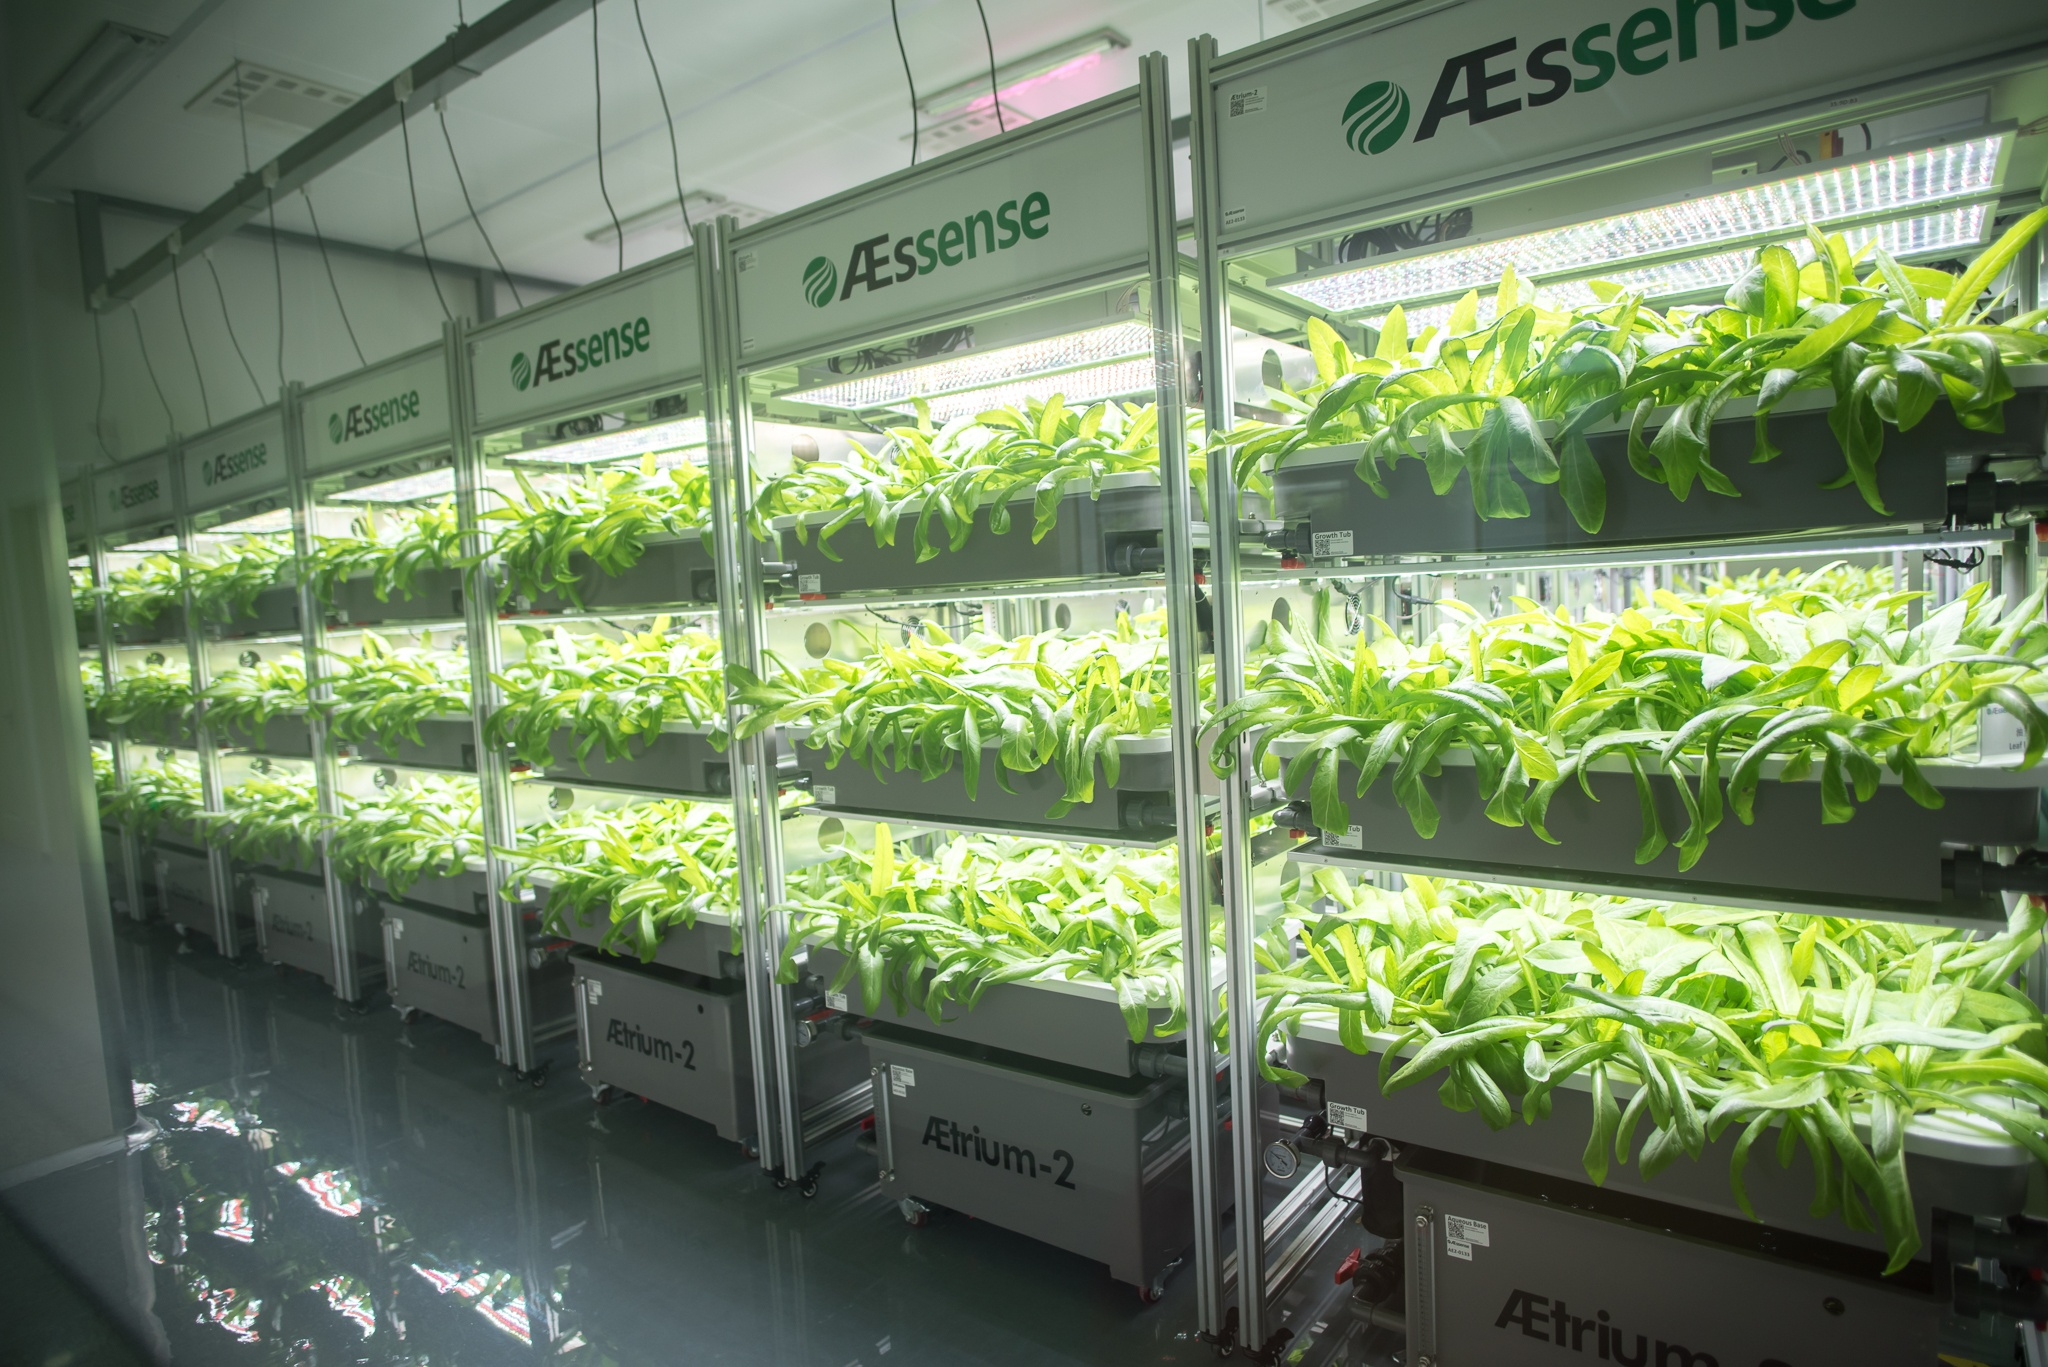 AEssenseGrows Fresh AEtrium-2 Growth